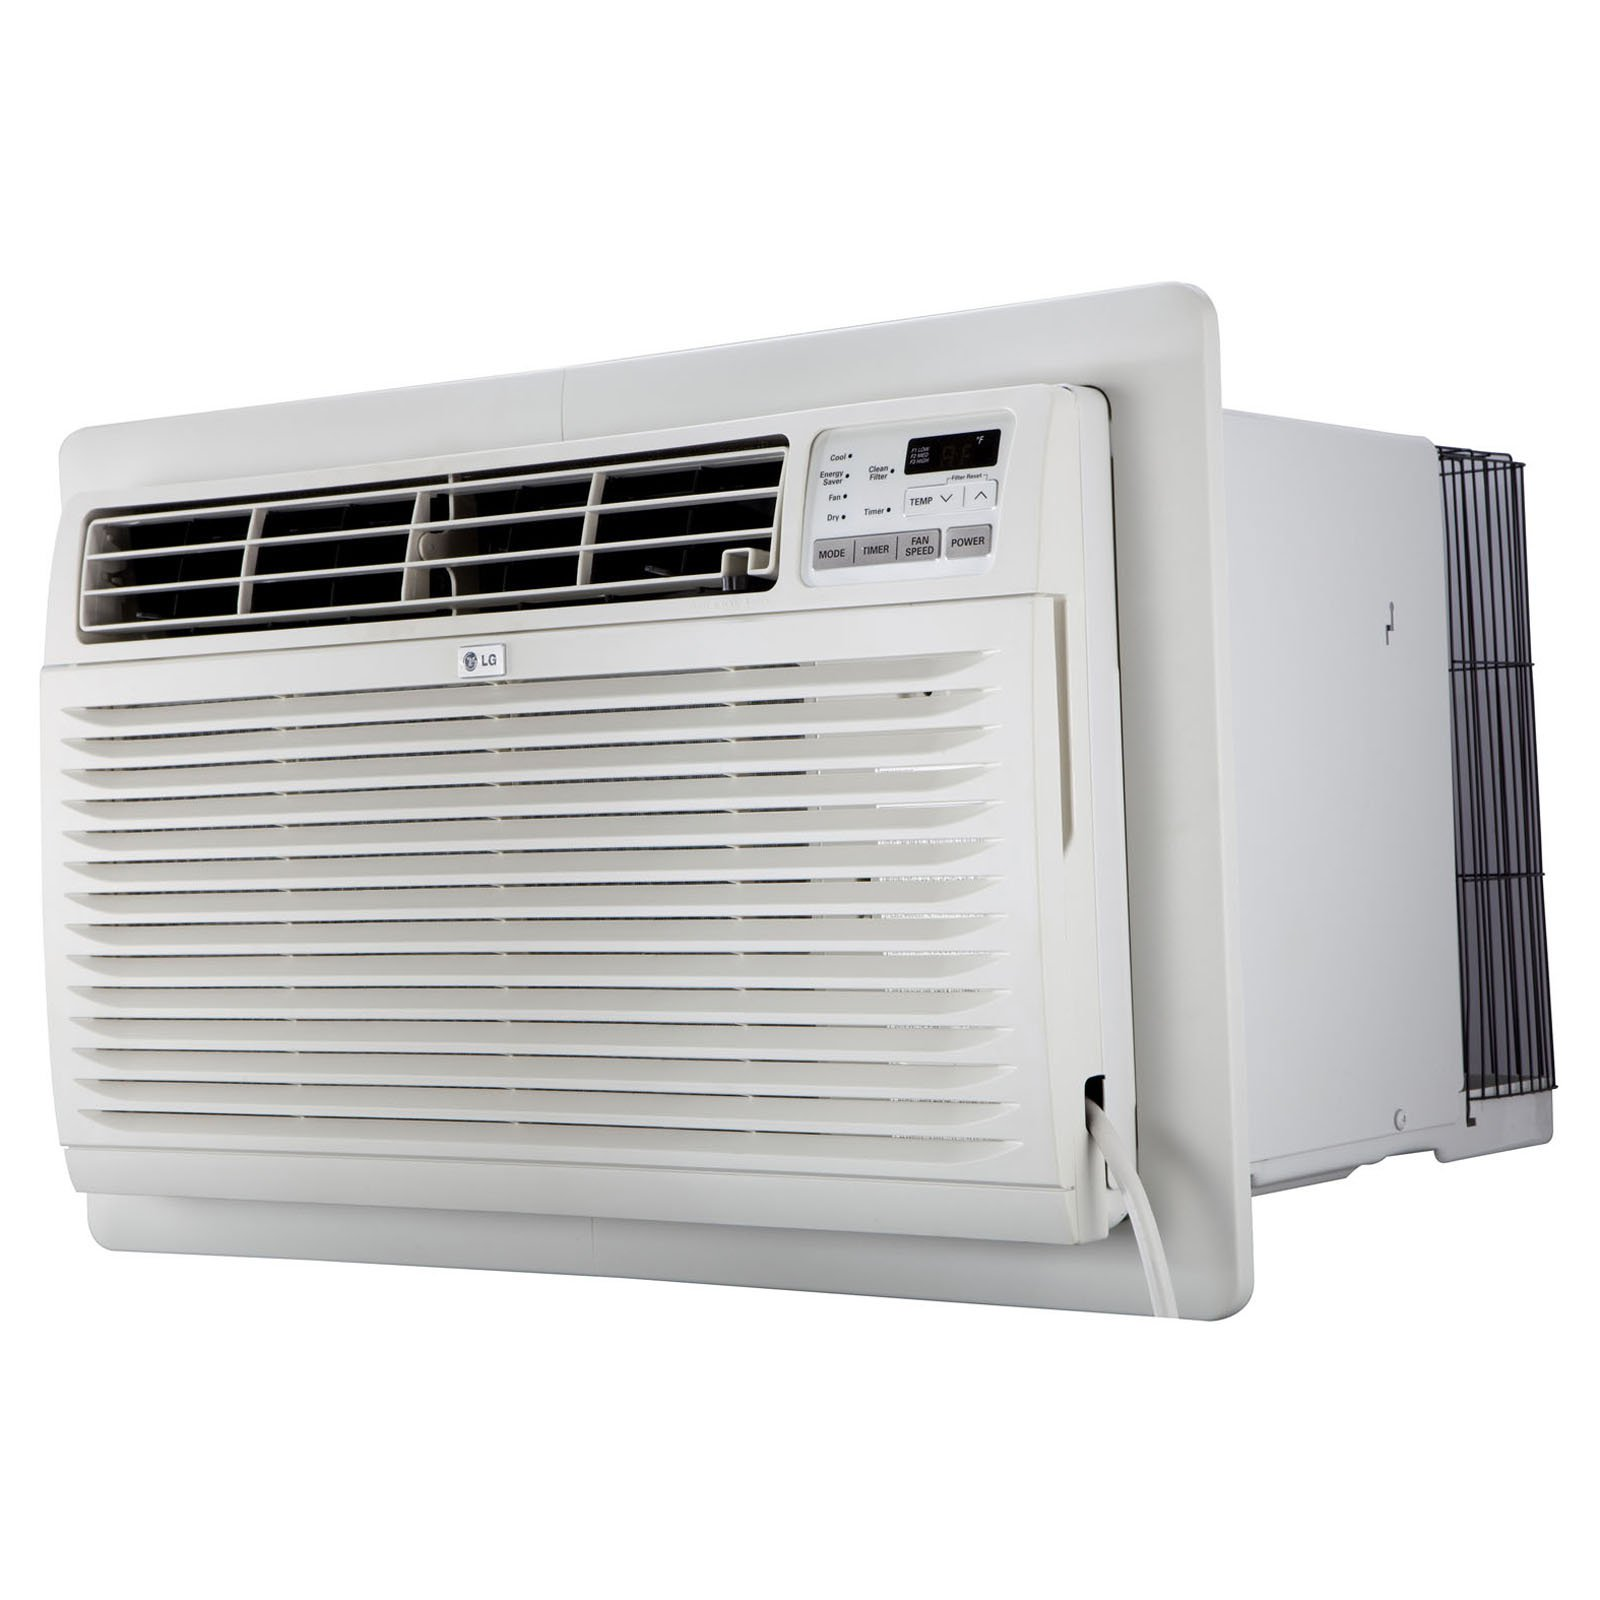 LG 8000 BTU 115V Through-the-Wall Air Conditioner with Remote Control